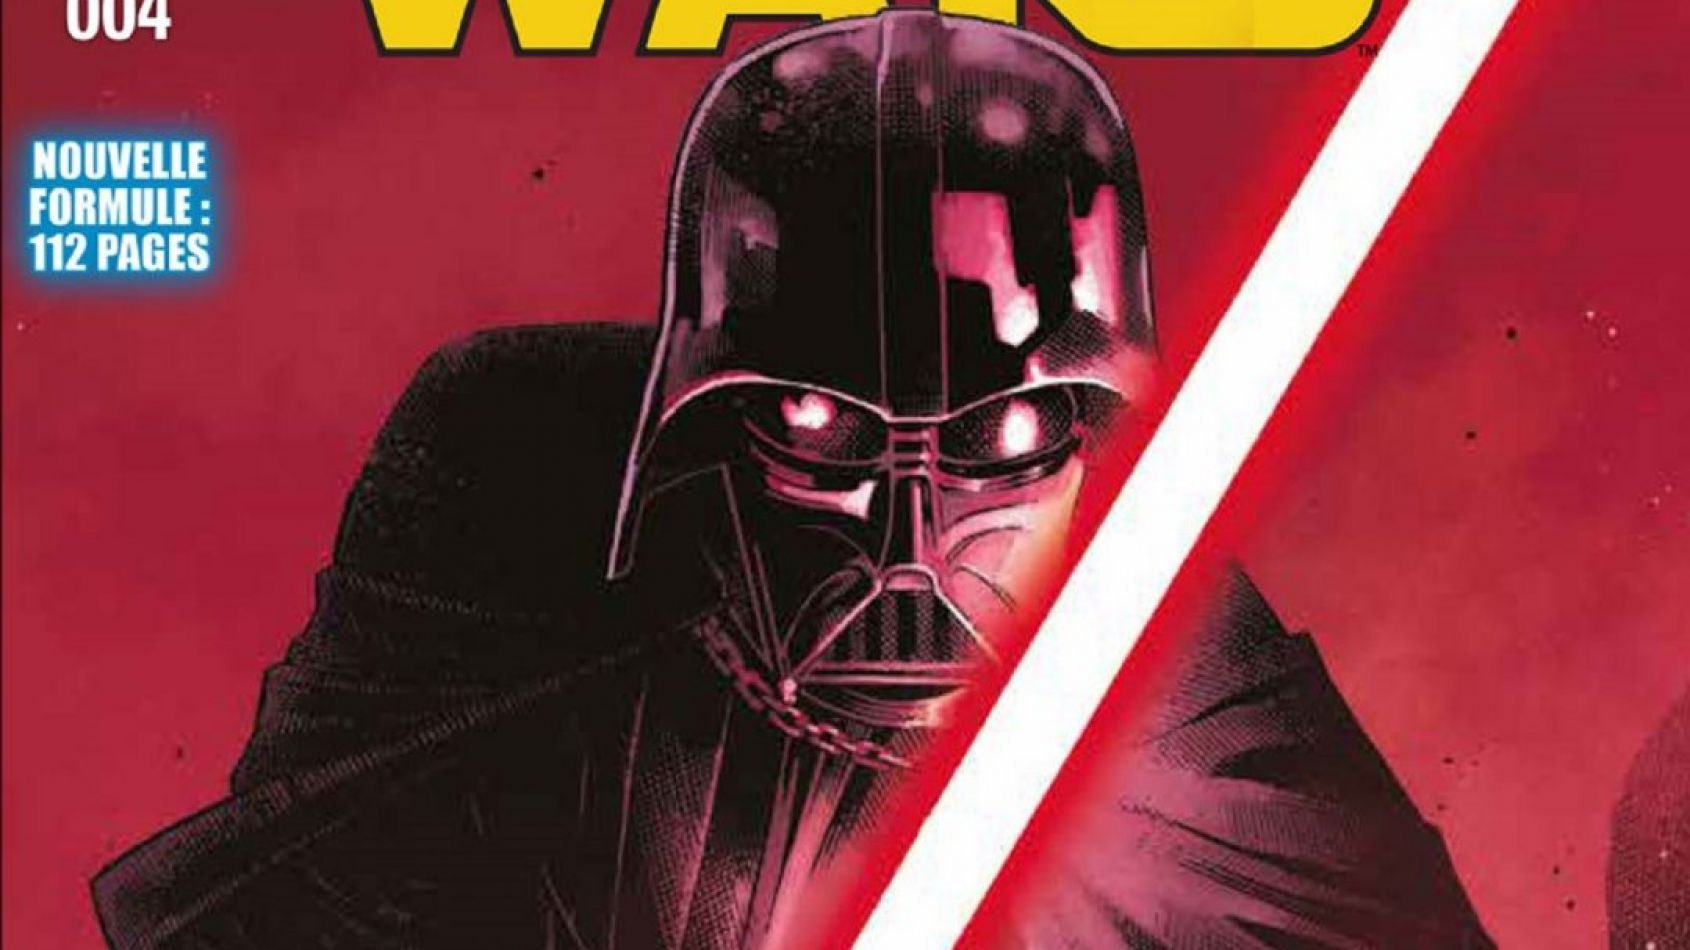 Panini : Sortie et preview du magazine STAR WARS 004